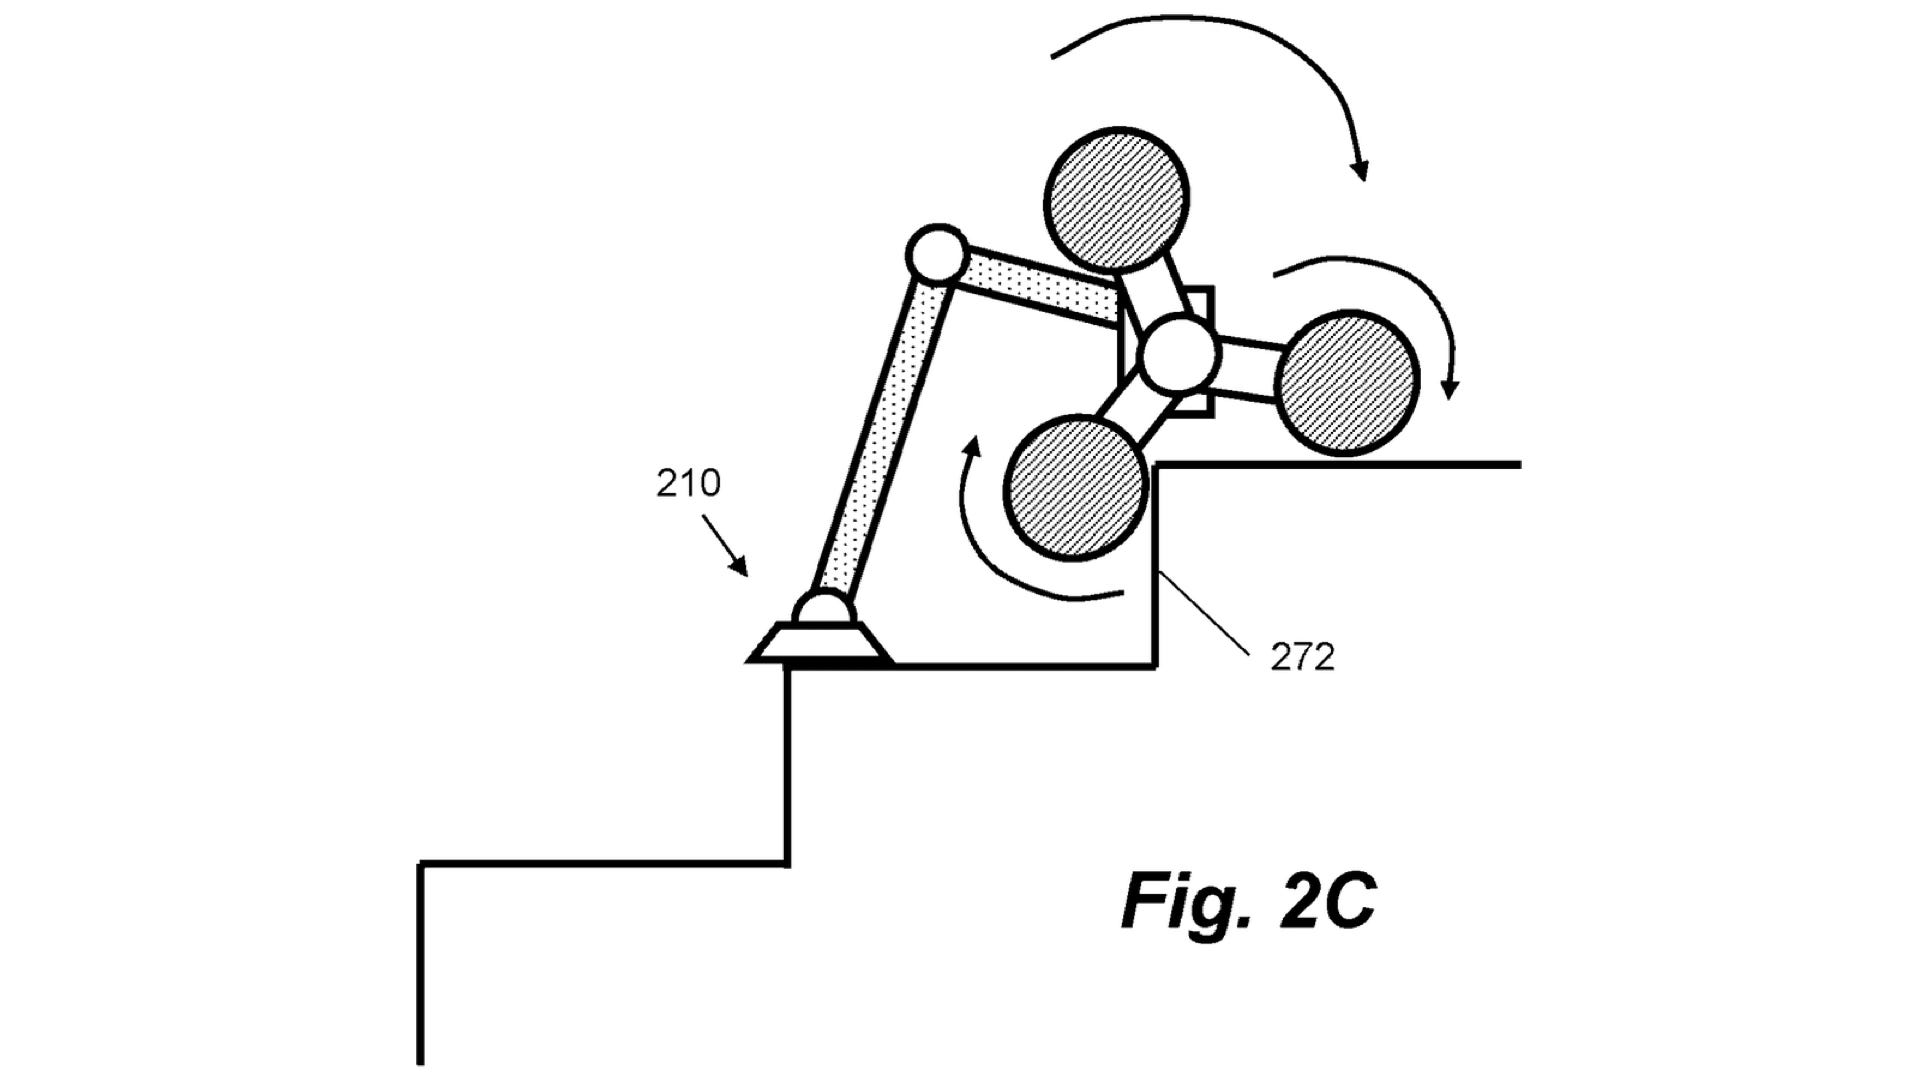 Dyson robot vacuum going up stairs -- patent